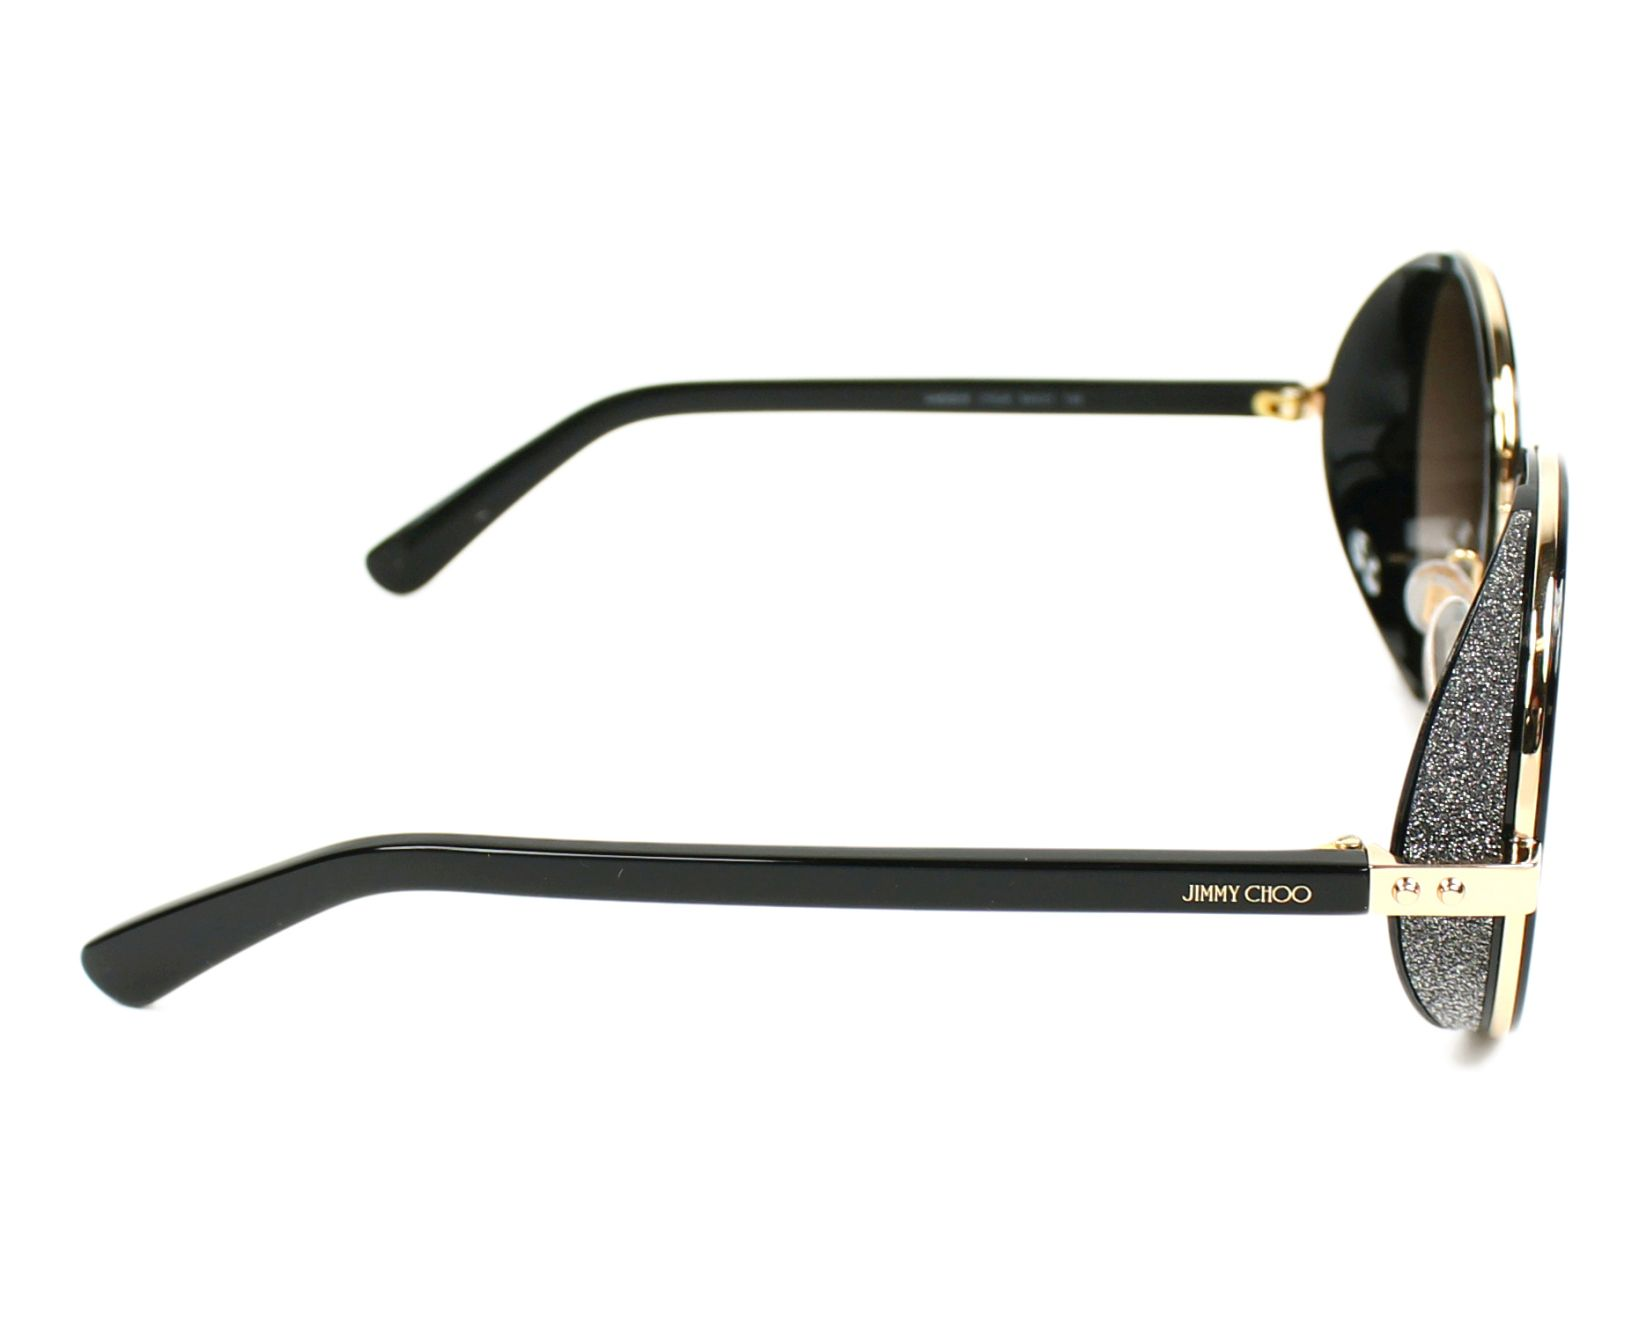 9cfd01f19f25 Sunglasses Jimmy Choo ANDIE-S J7Q J6 54-21 Black Gold side view